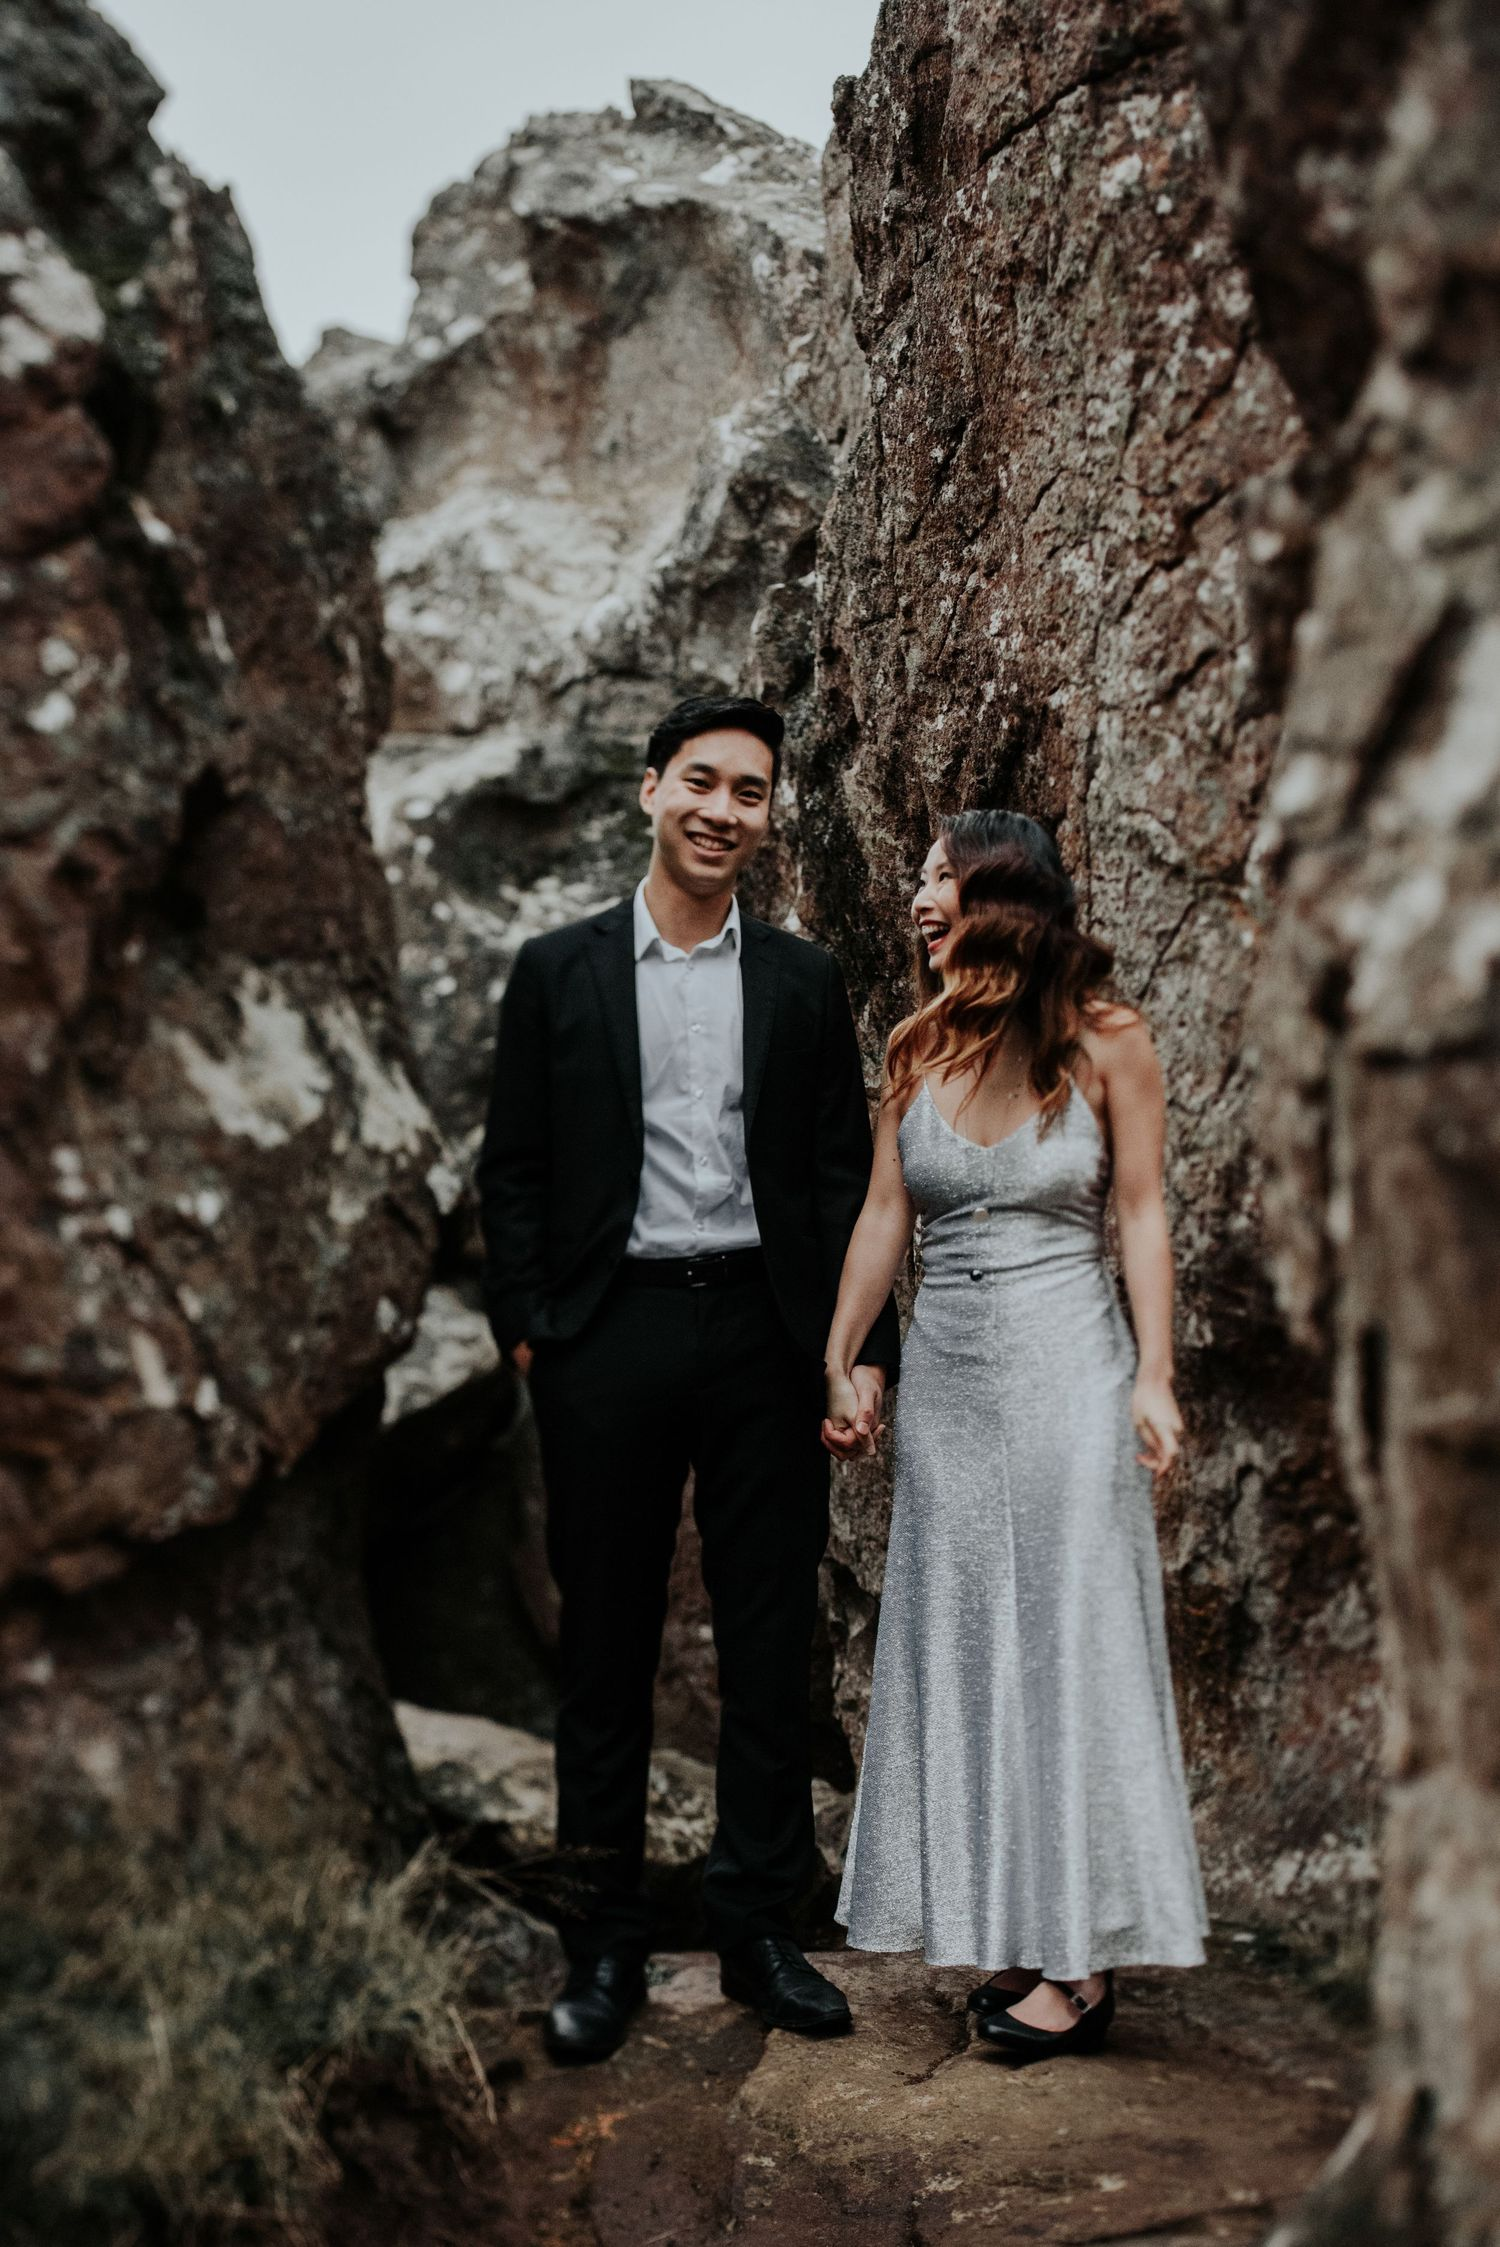 Candid relaxed wedding prewedding engagement couple photography at Hanging Rock Melbourne